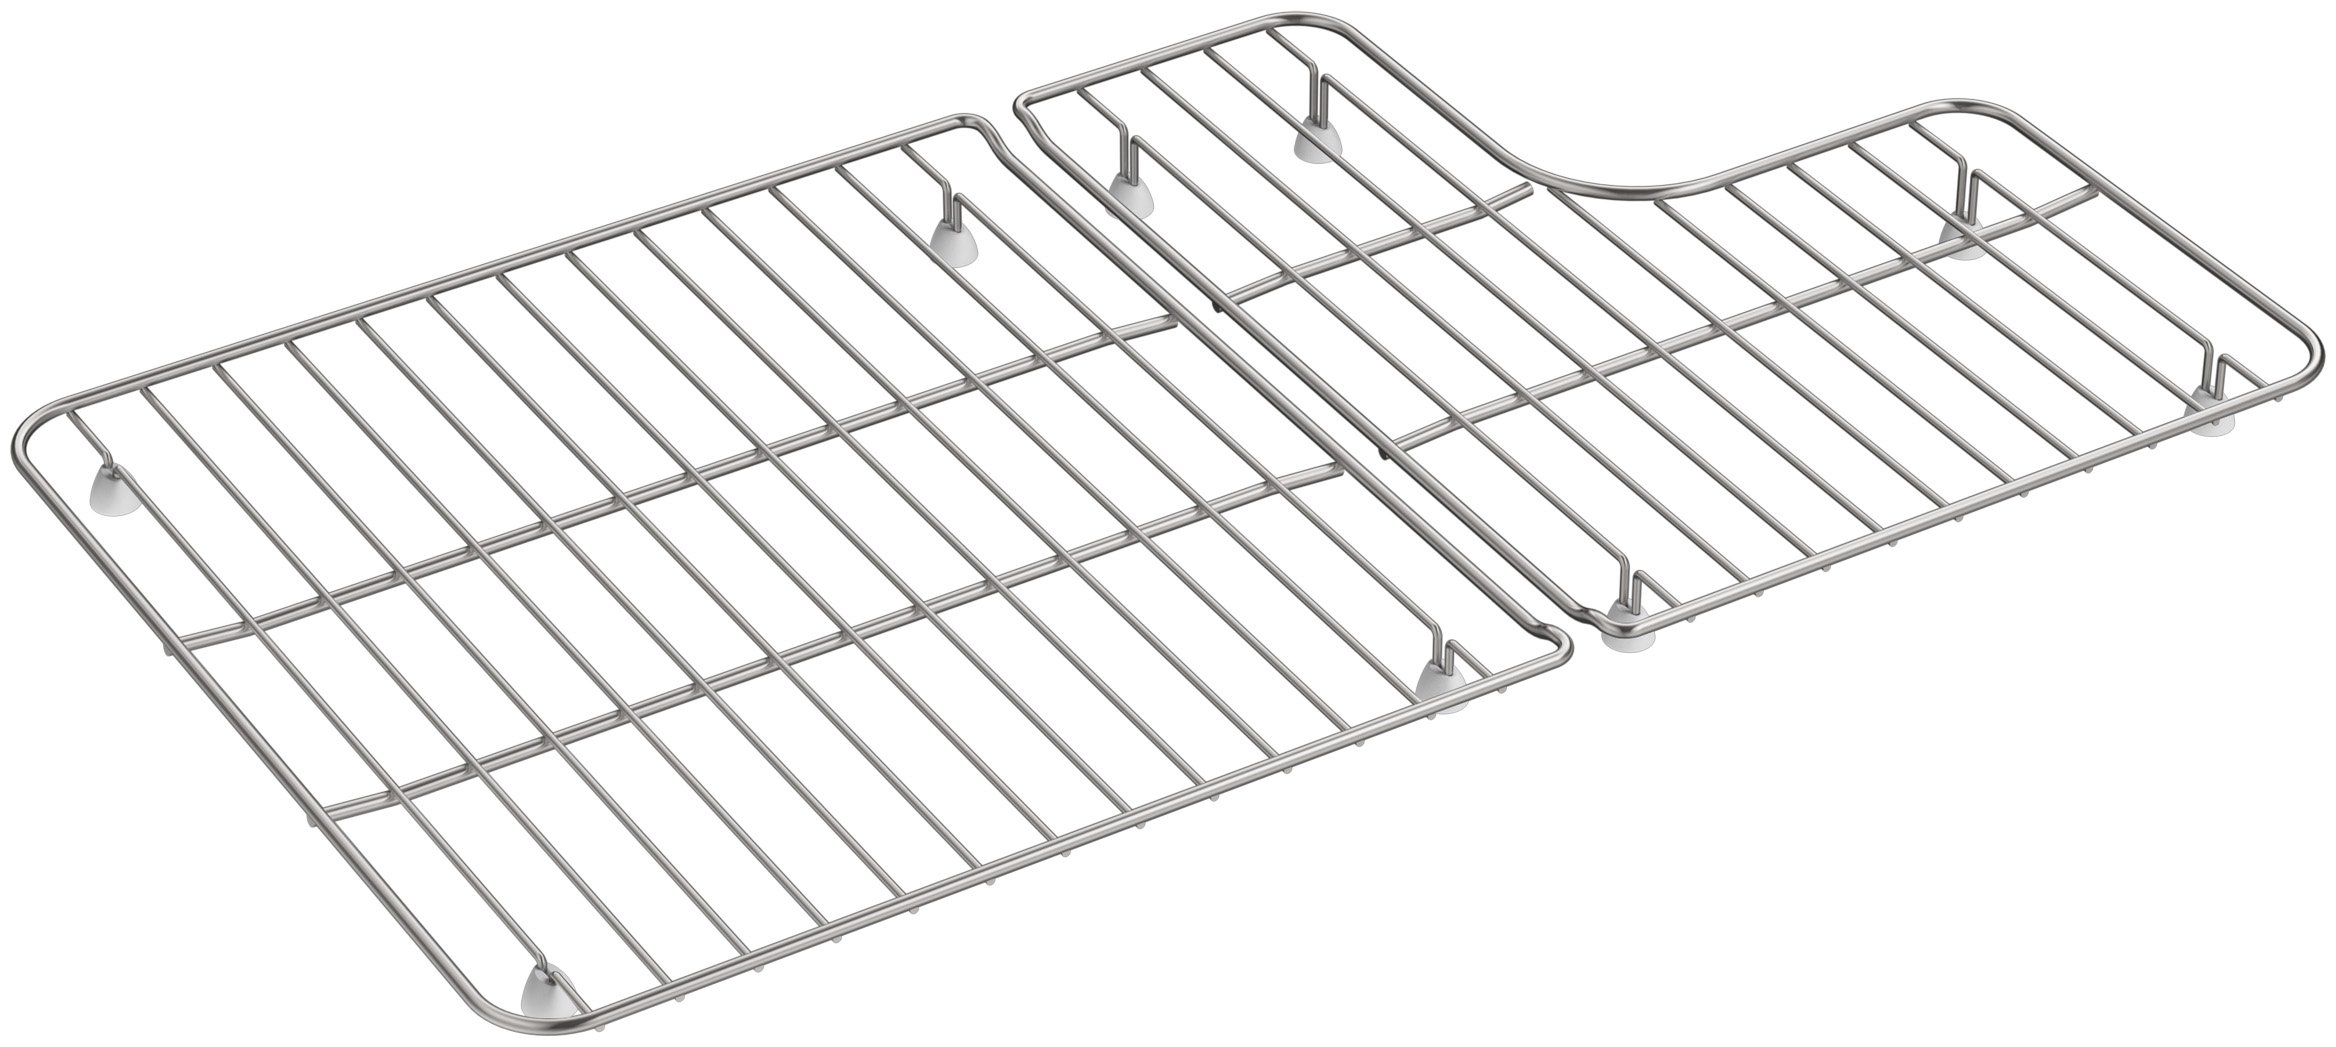 KOHLER 6449-ST Sink Racks for Whitehaven K-5826 and K-5827 Sinks, Stainless Steel by Kohler